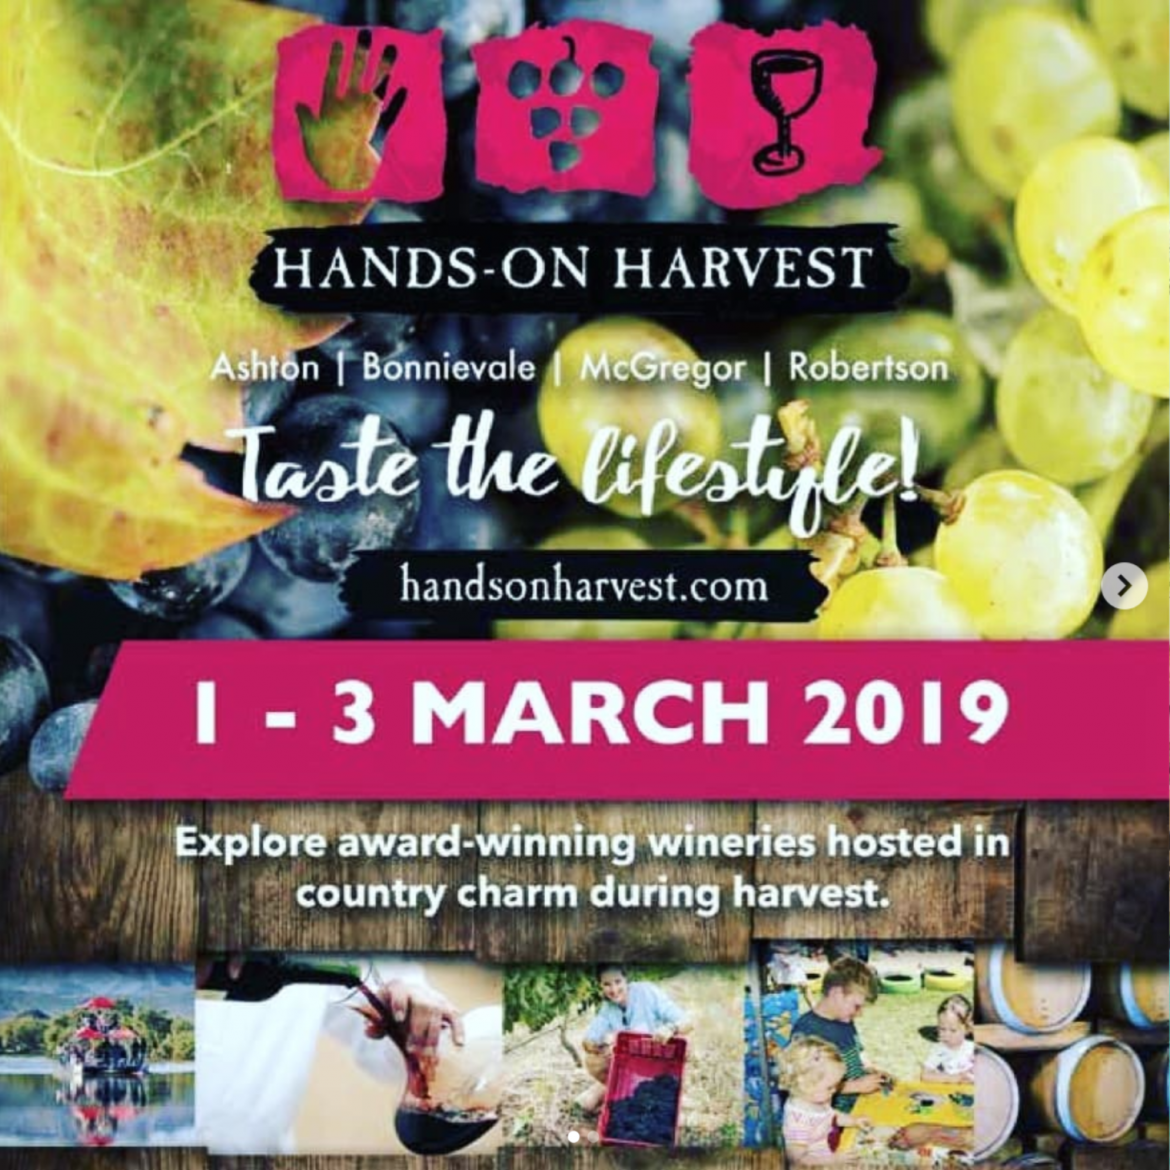 Hands-On Harvest